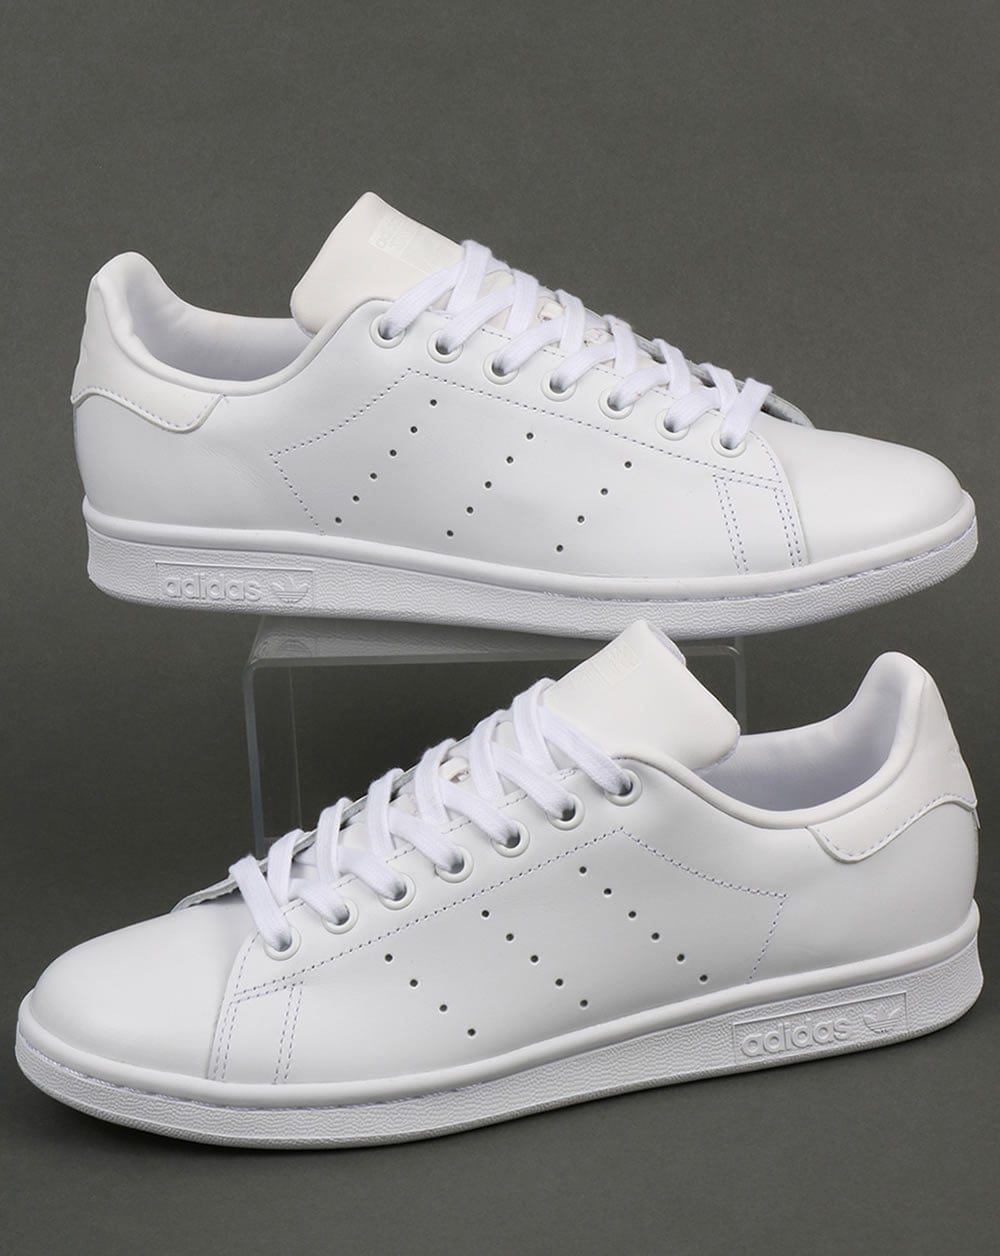 adidas stan smith trainers triple white originals shoes. Black Bedroom Furniture Sets. Home Design Ideas